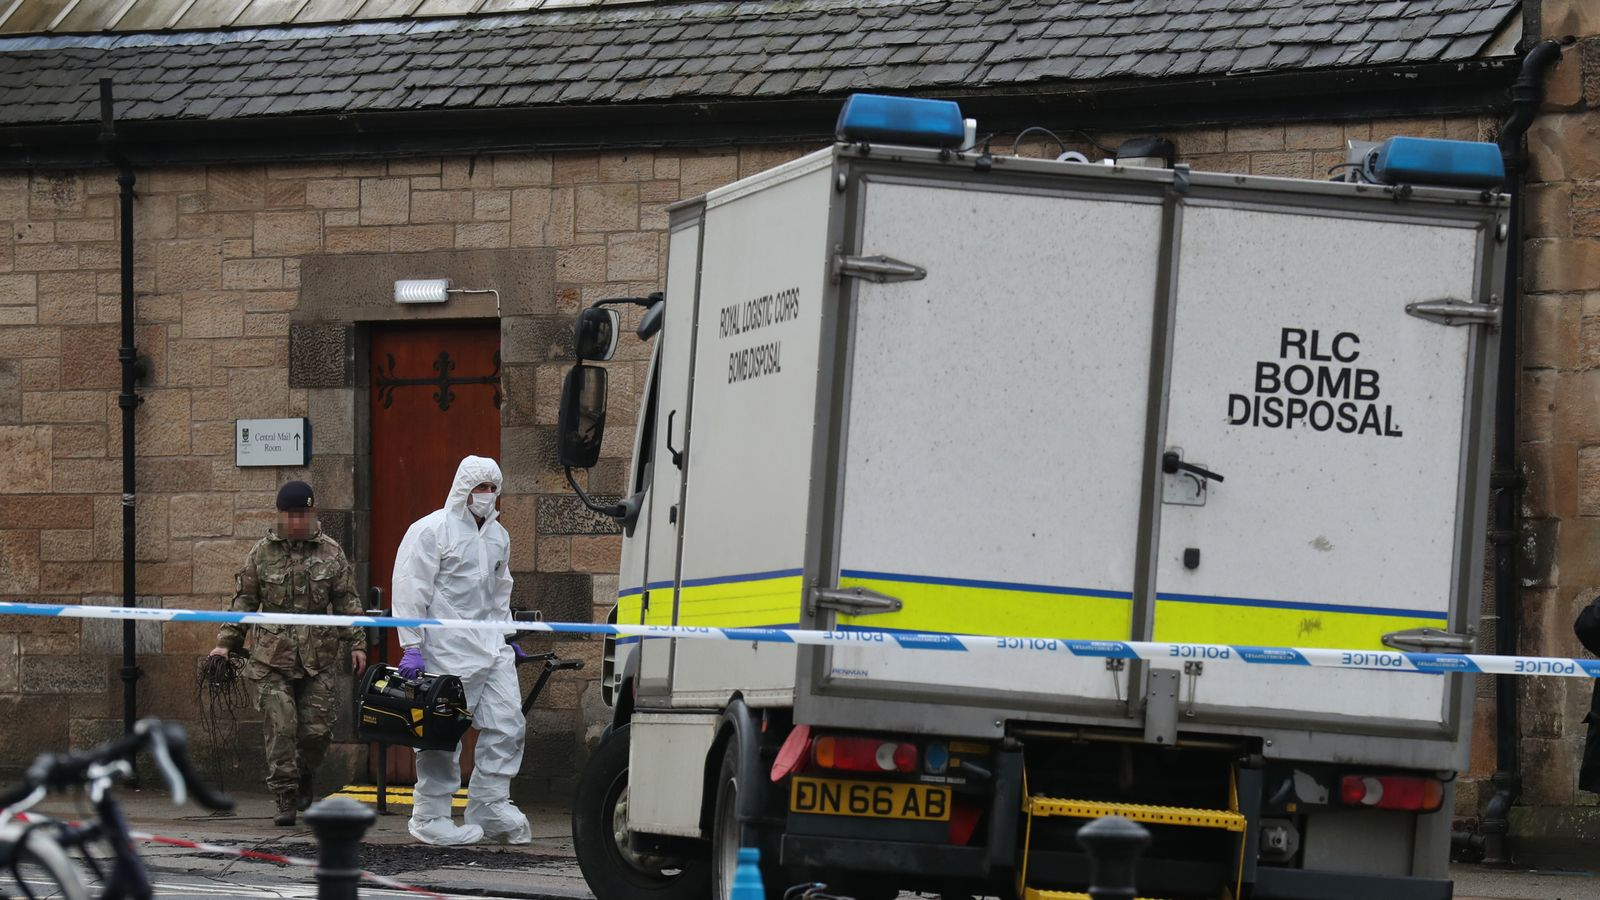 Glasgow University package linked to London explosives ...